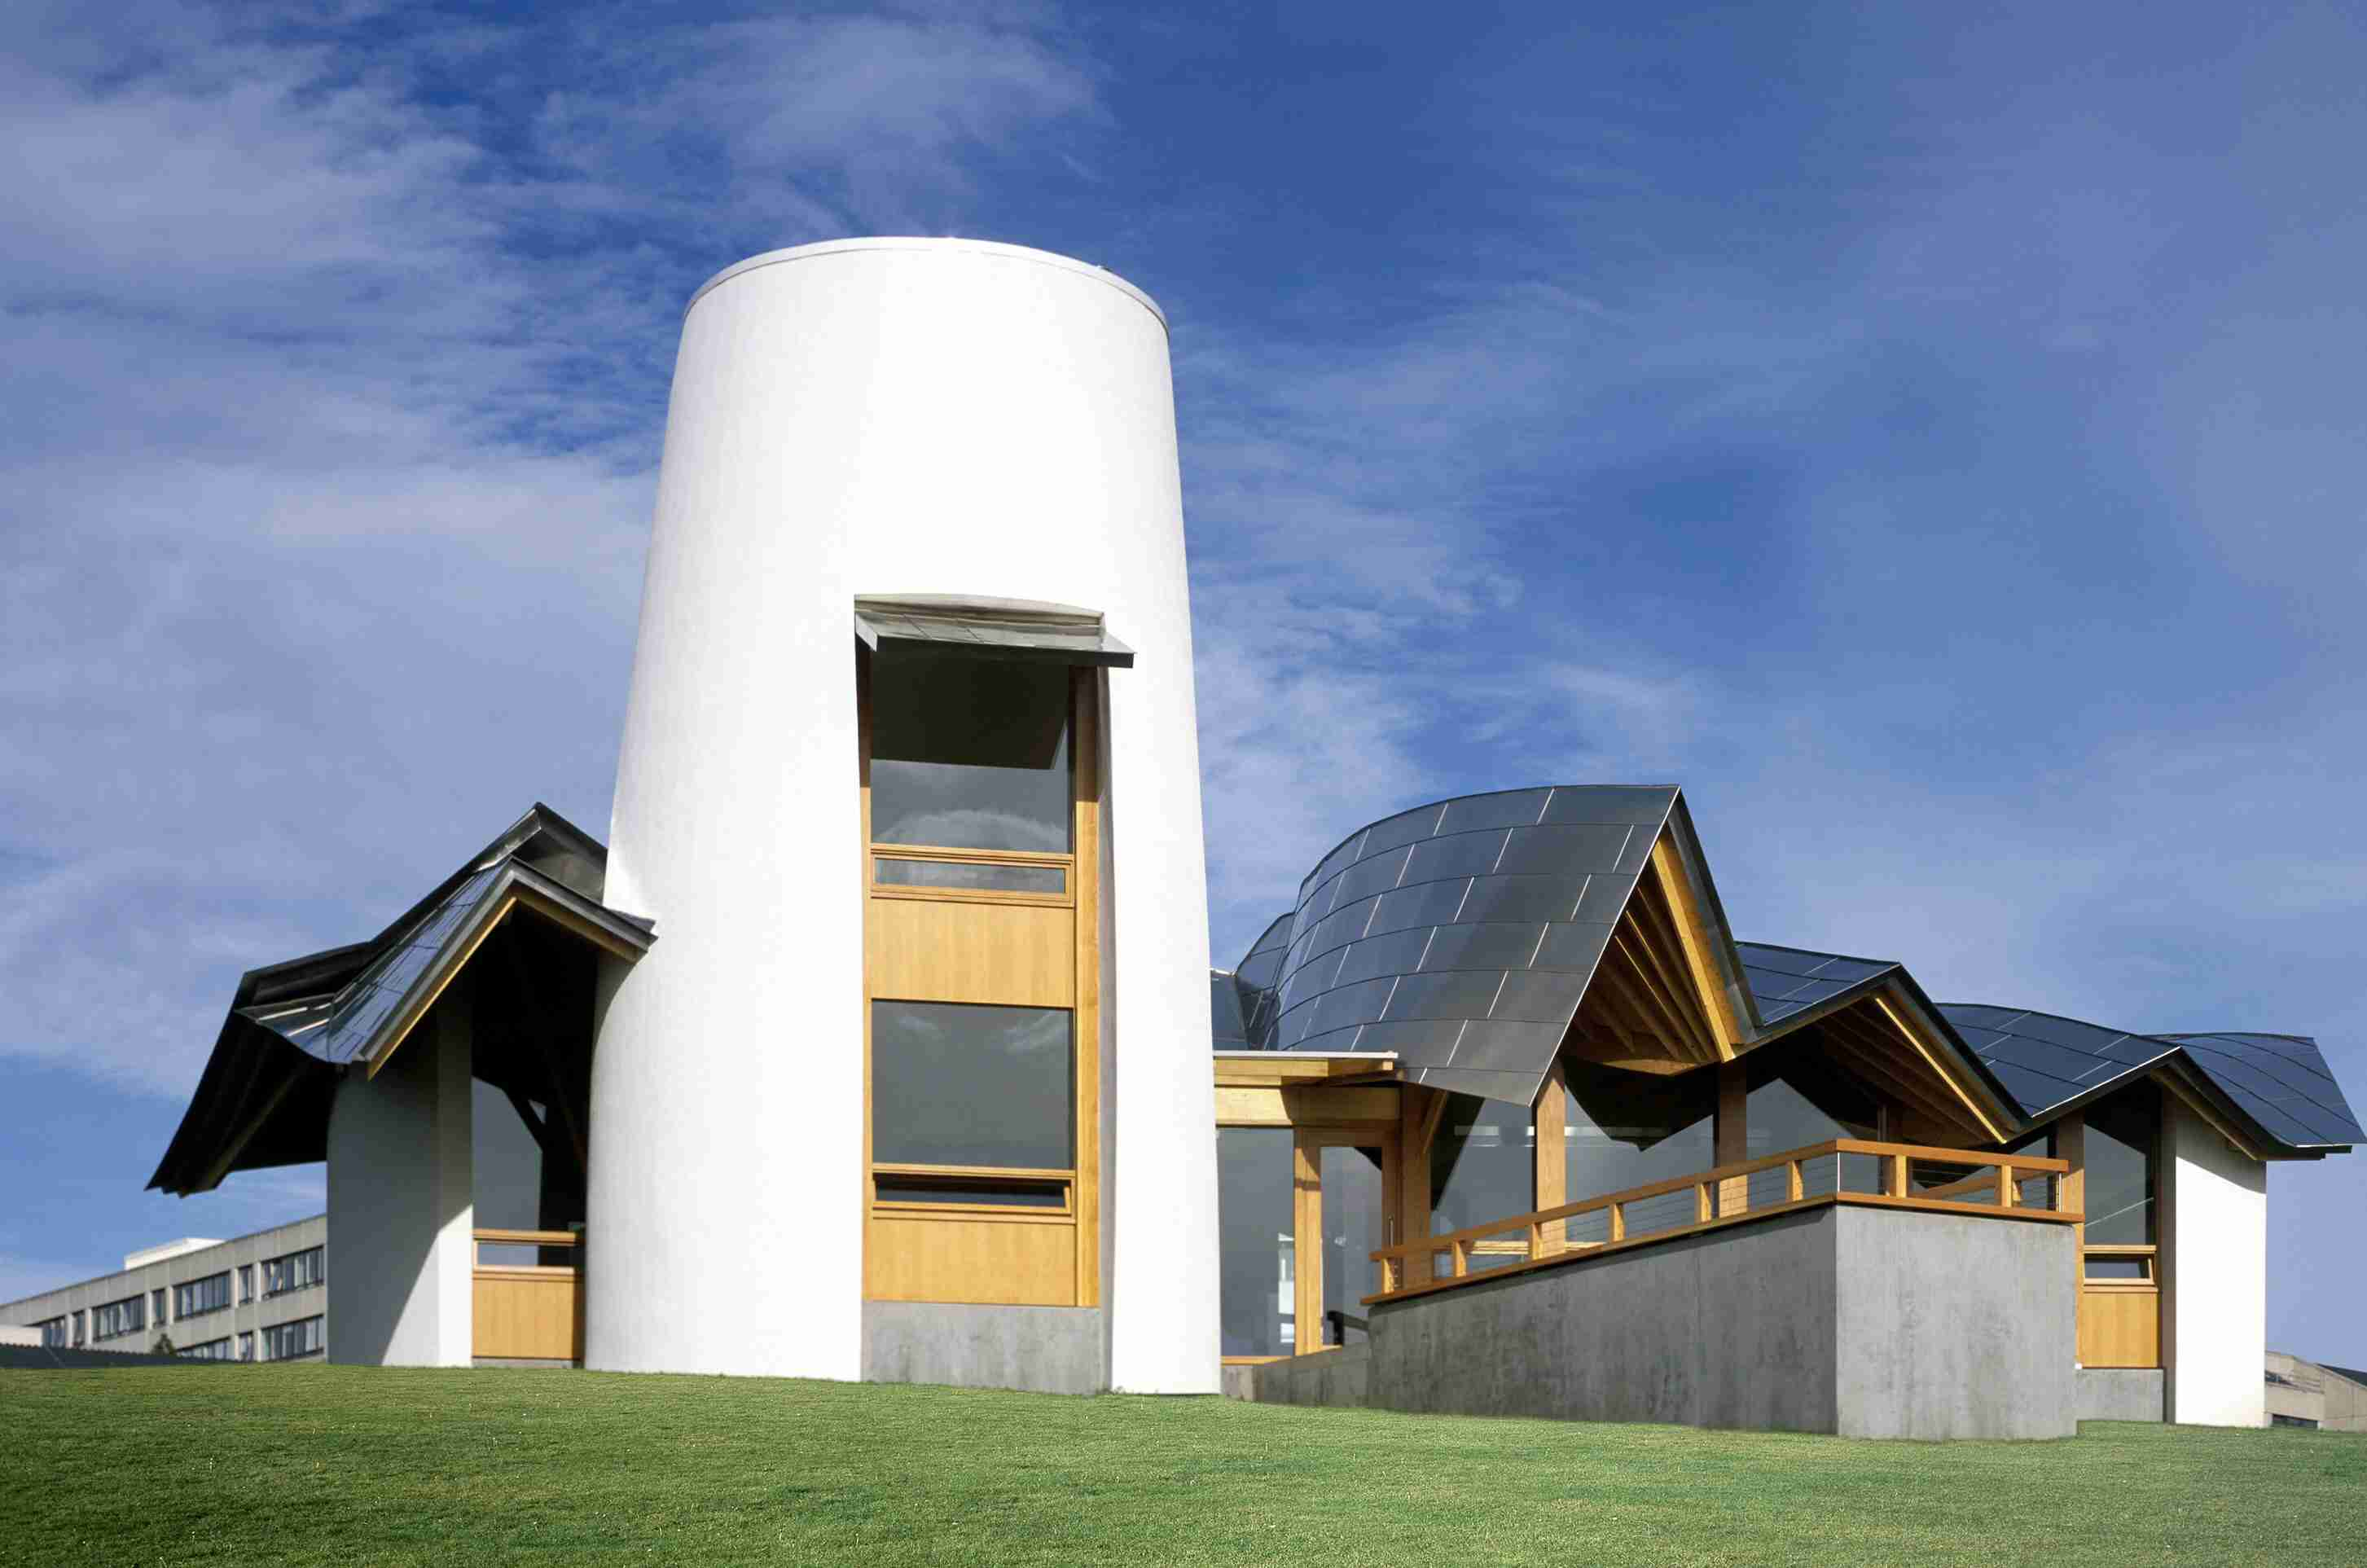 White, cottage-like building, wavy silver roof, Frank Gehry, white silo-like tower